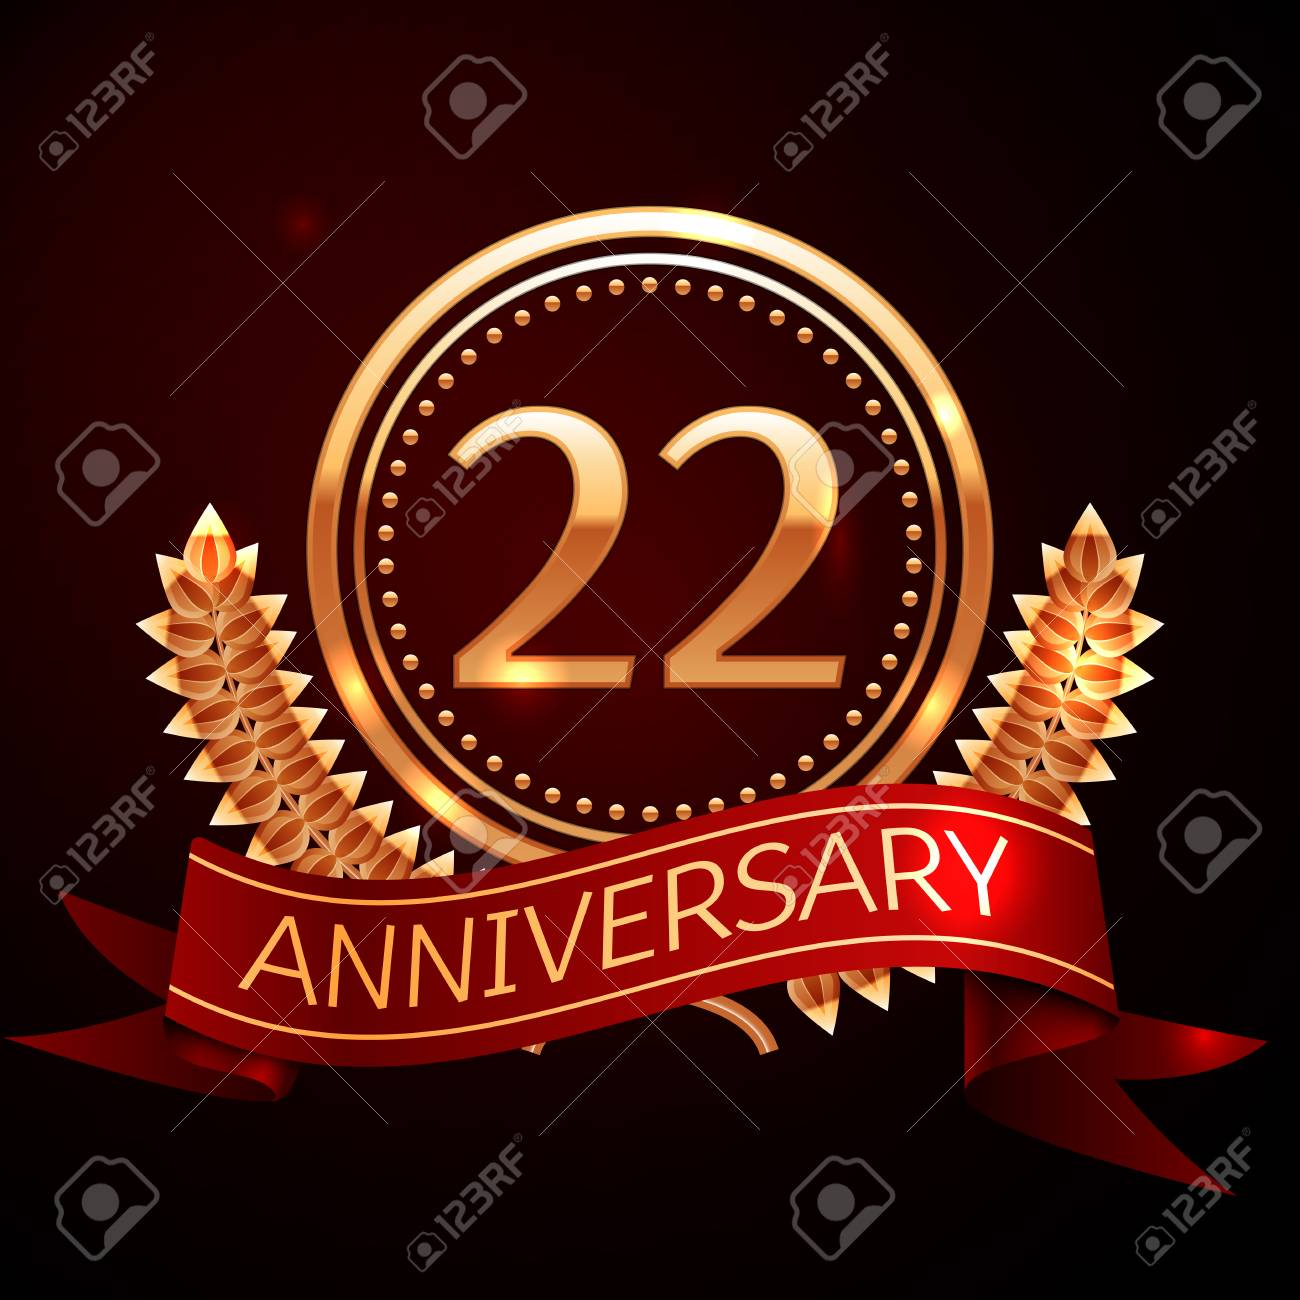 Twenty two years anniversary celebration with golden ring and ribbon. - 66529135